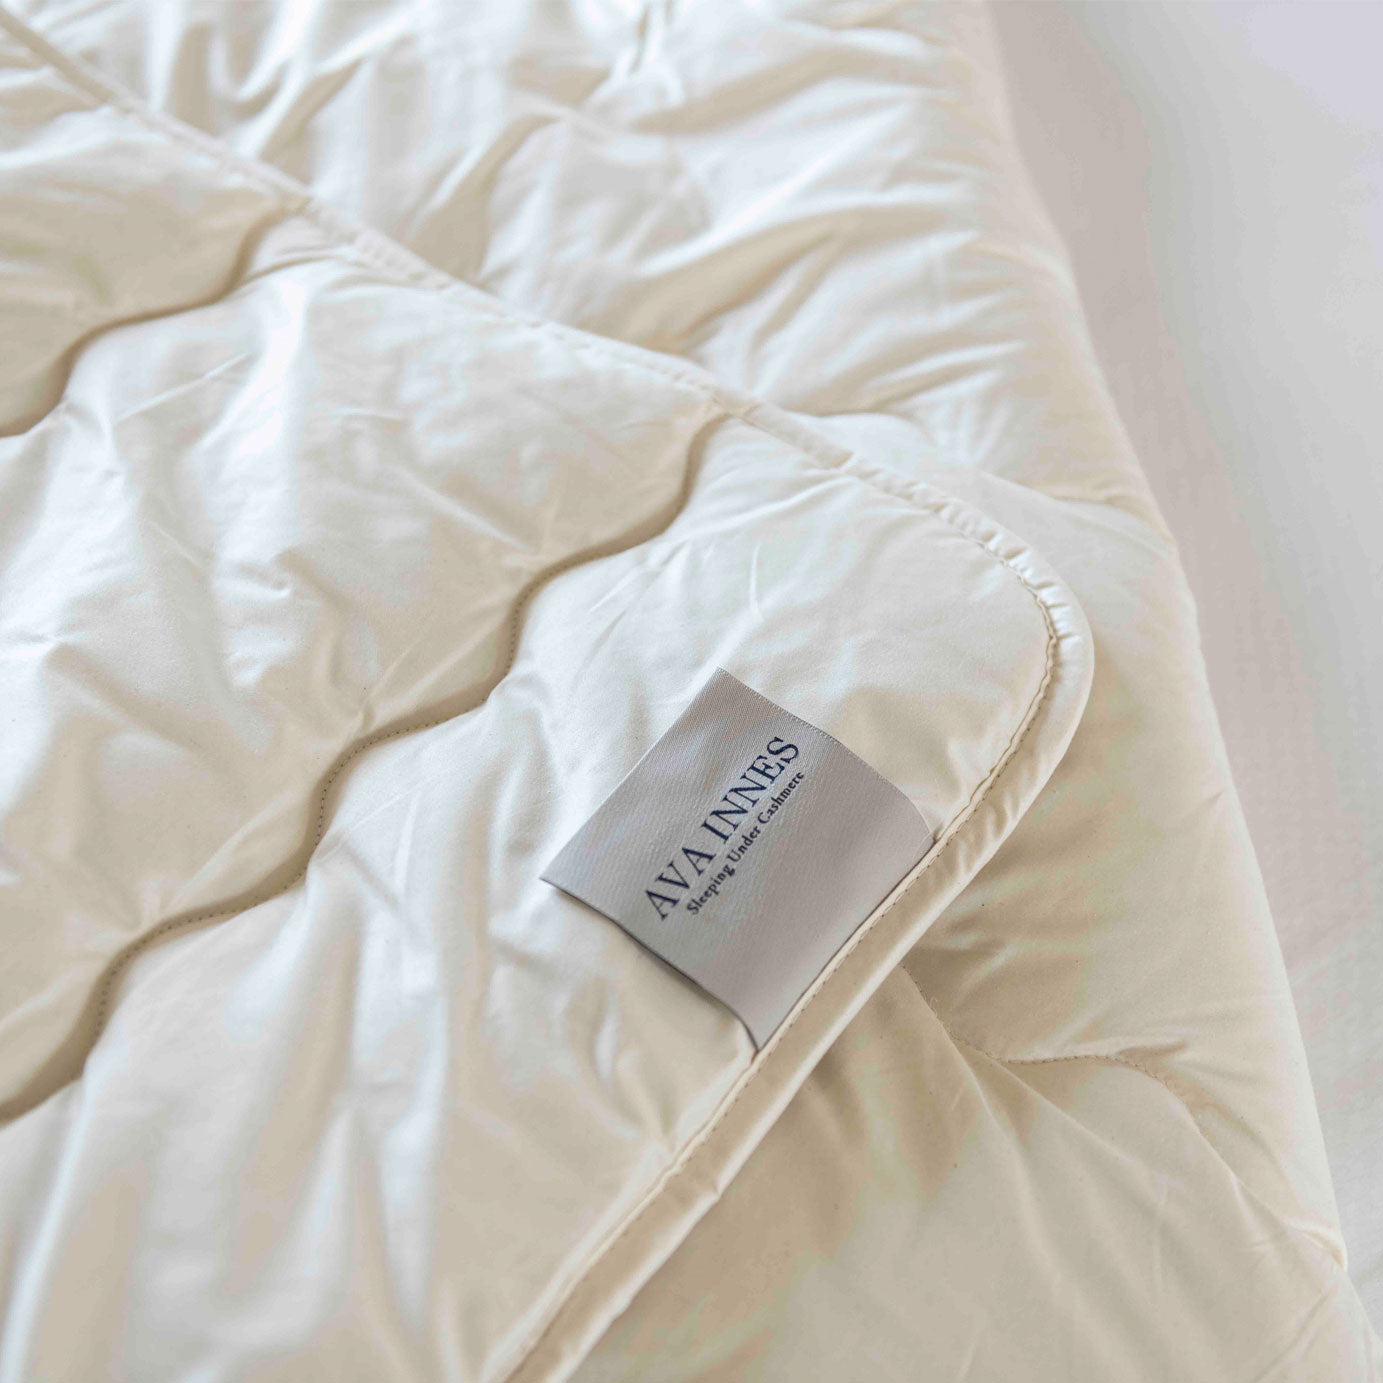 Luxury Cashmere & Wool Bespoke King & Single Duvet All Year Round